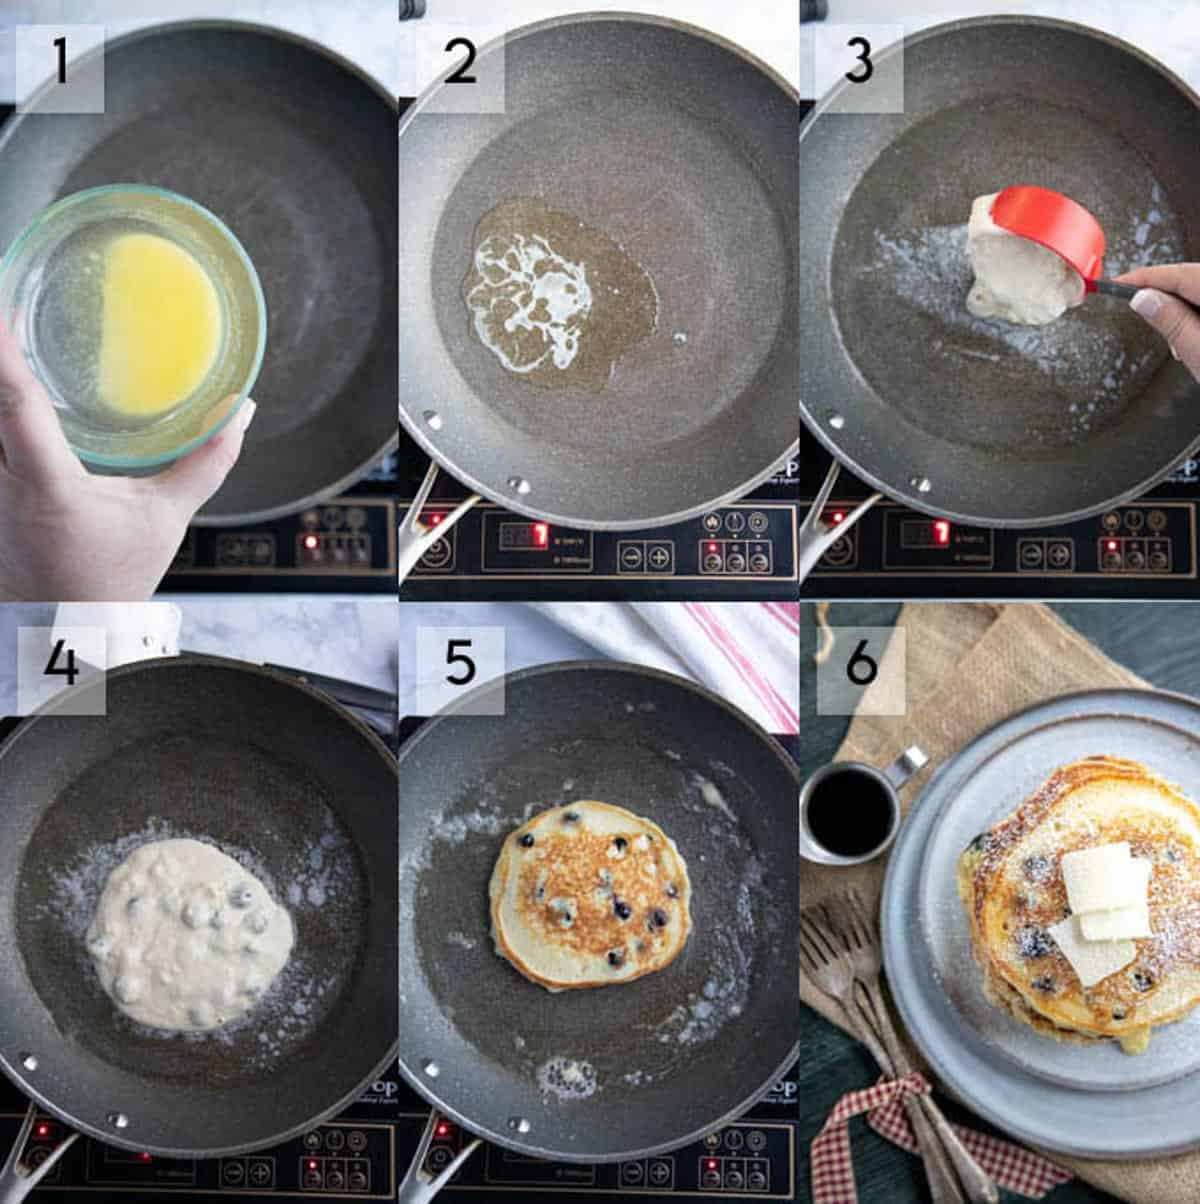 collage showing how to make blueberry pancakes